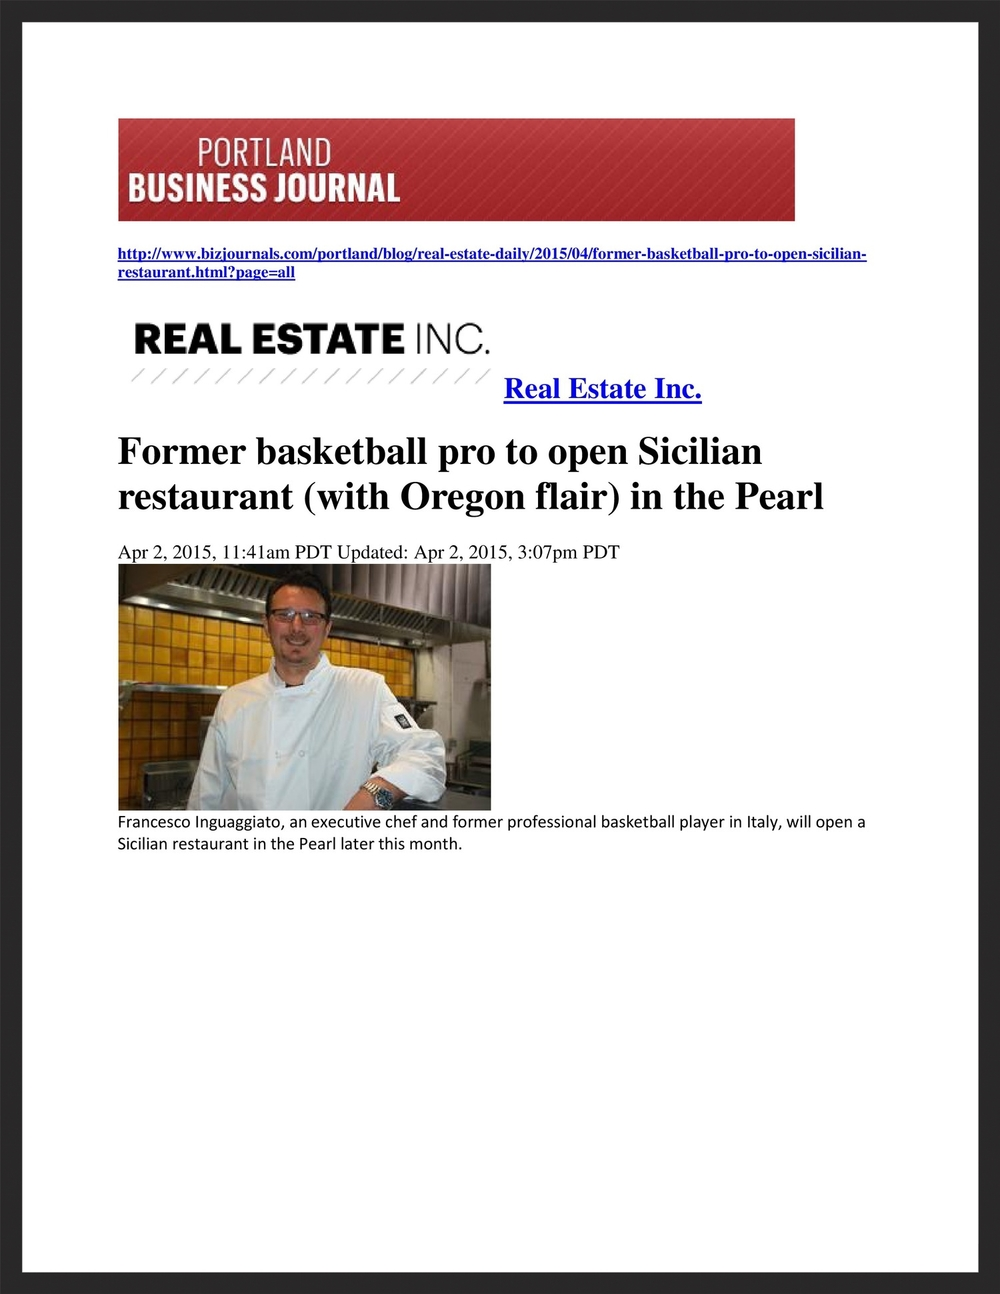 BELLINO TRATTORIA SICILIANA   Portland Business Journal  04.02.2015